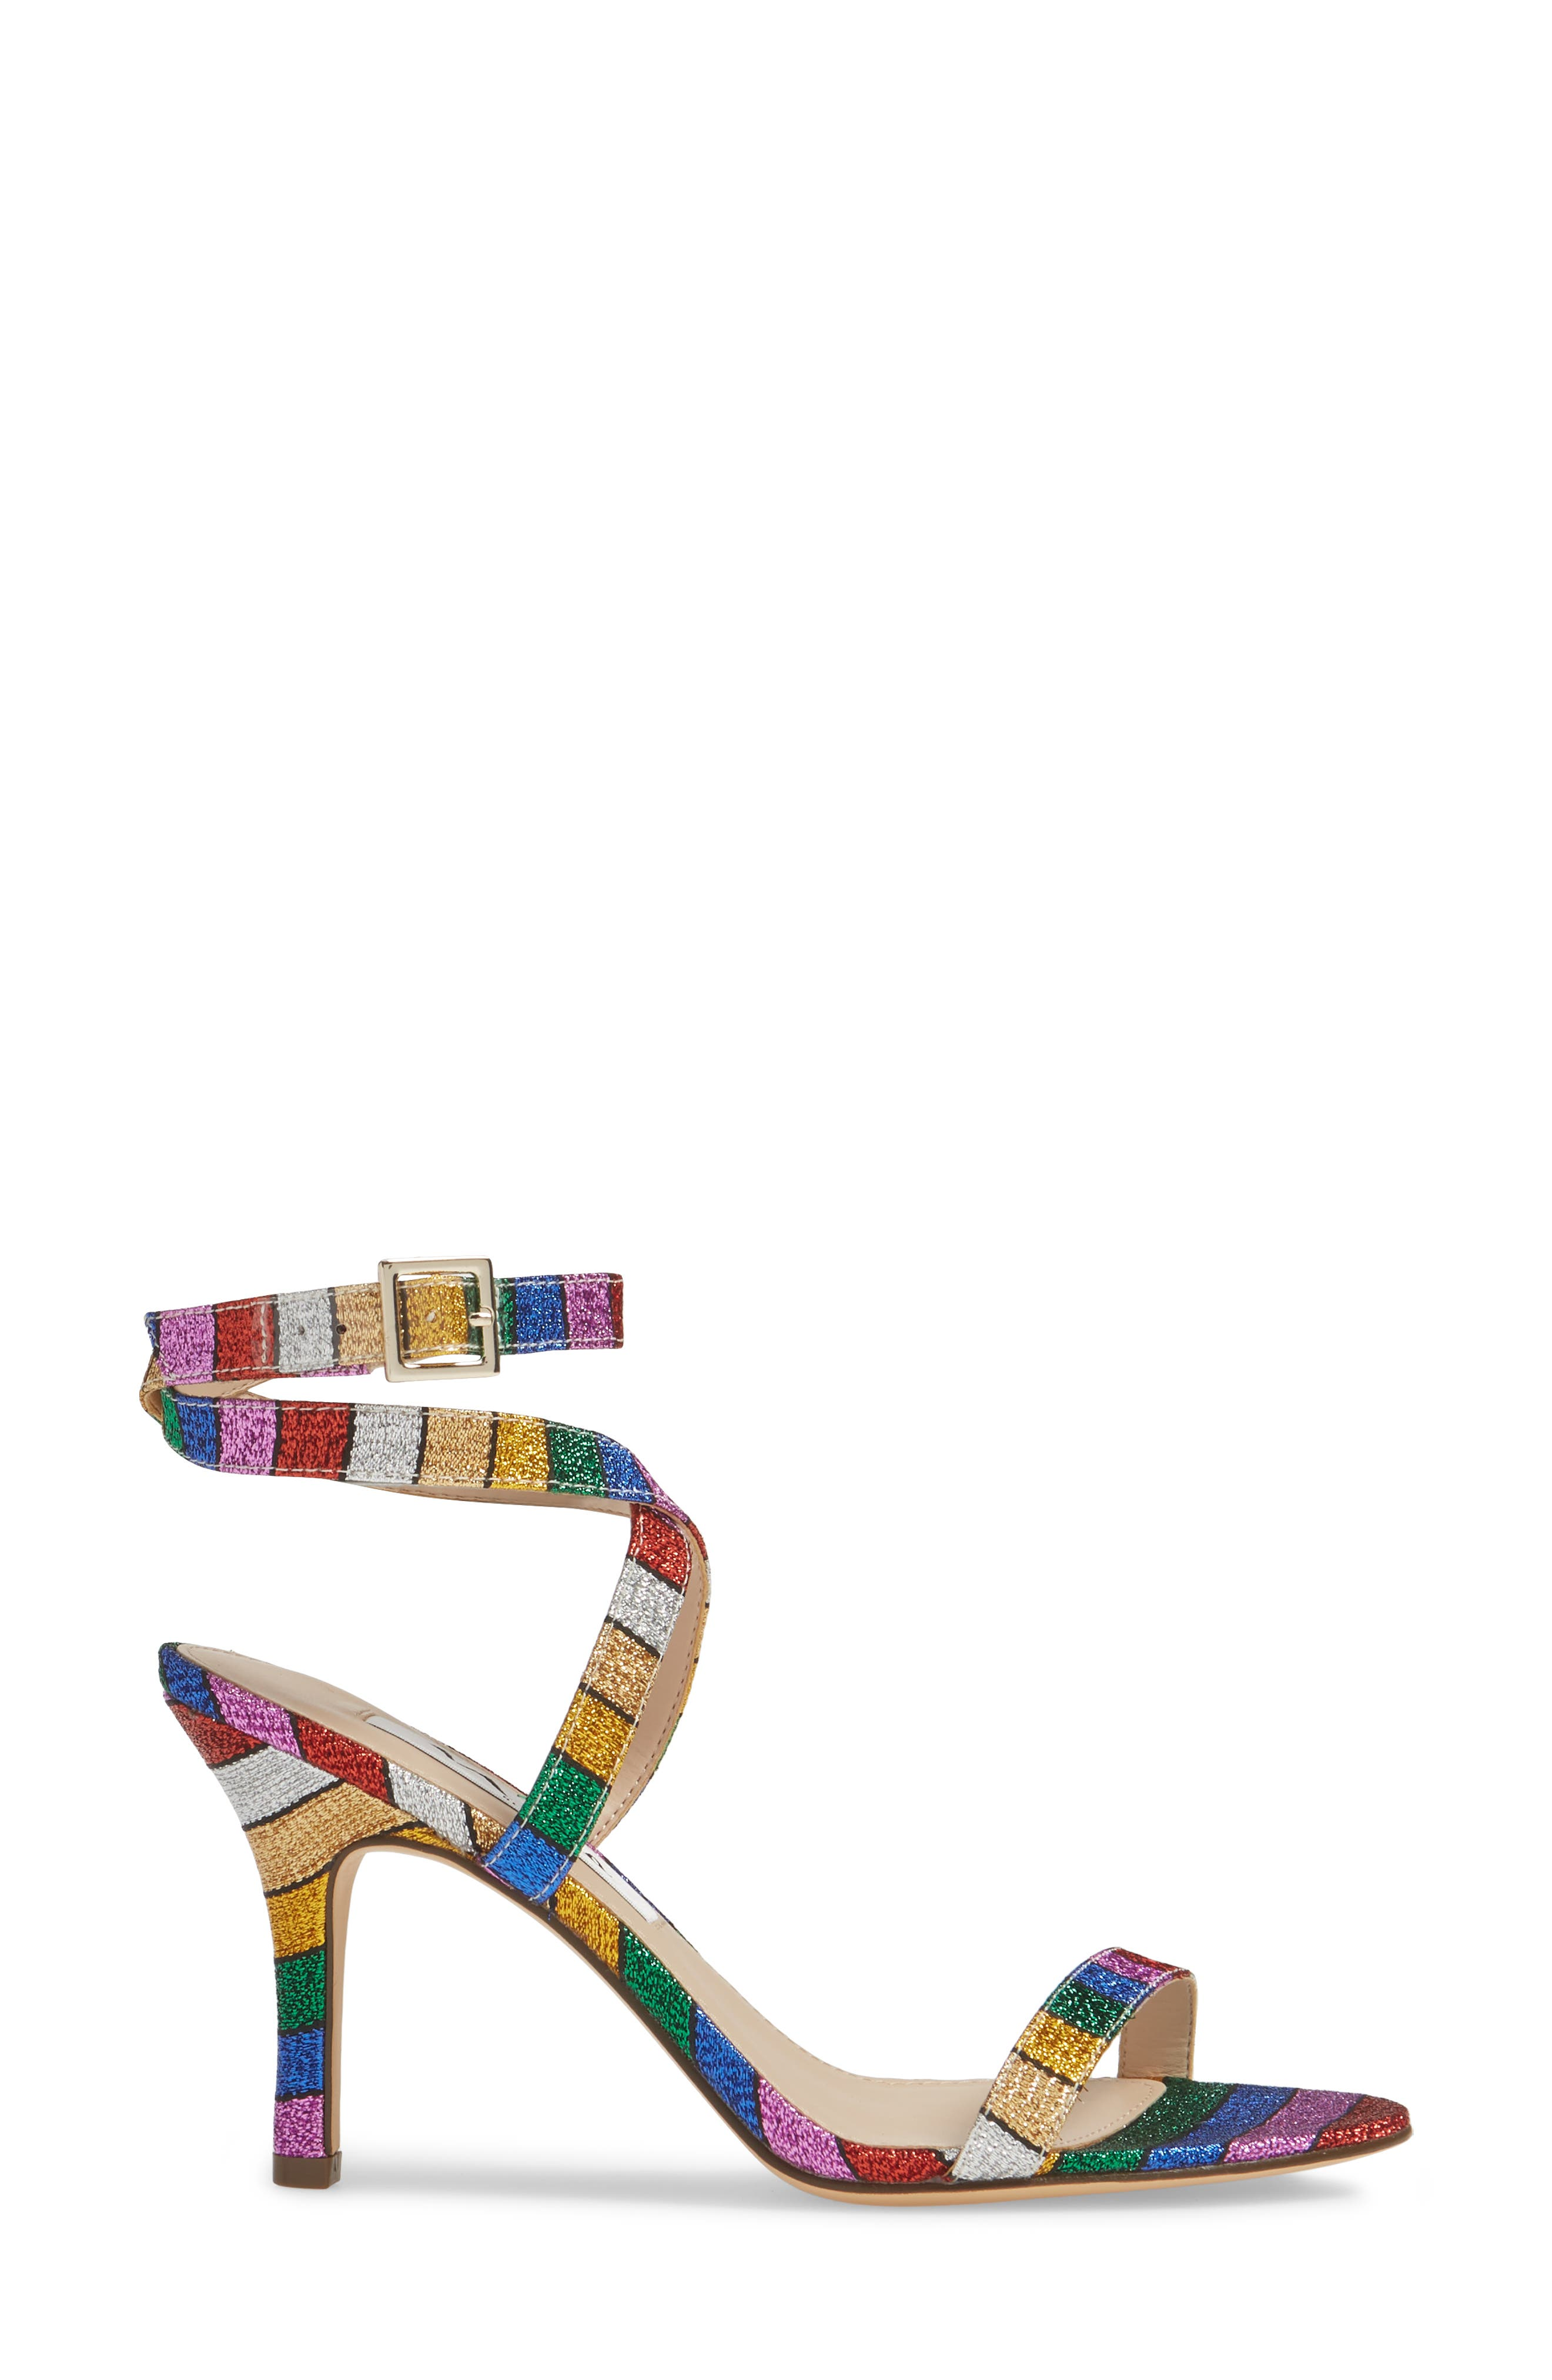 NINA, Vanna Ankle Strap Sandal, Alternate thumbnail 3, color, RAINBOW MULTI FABRIC